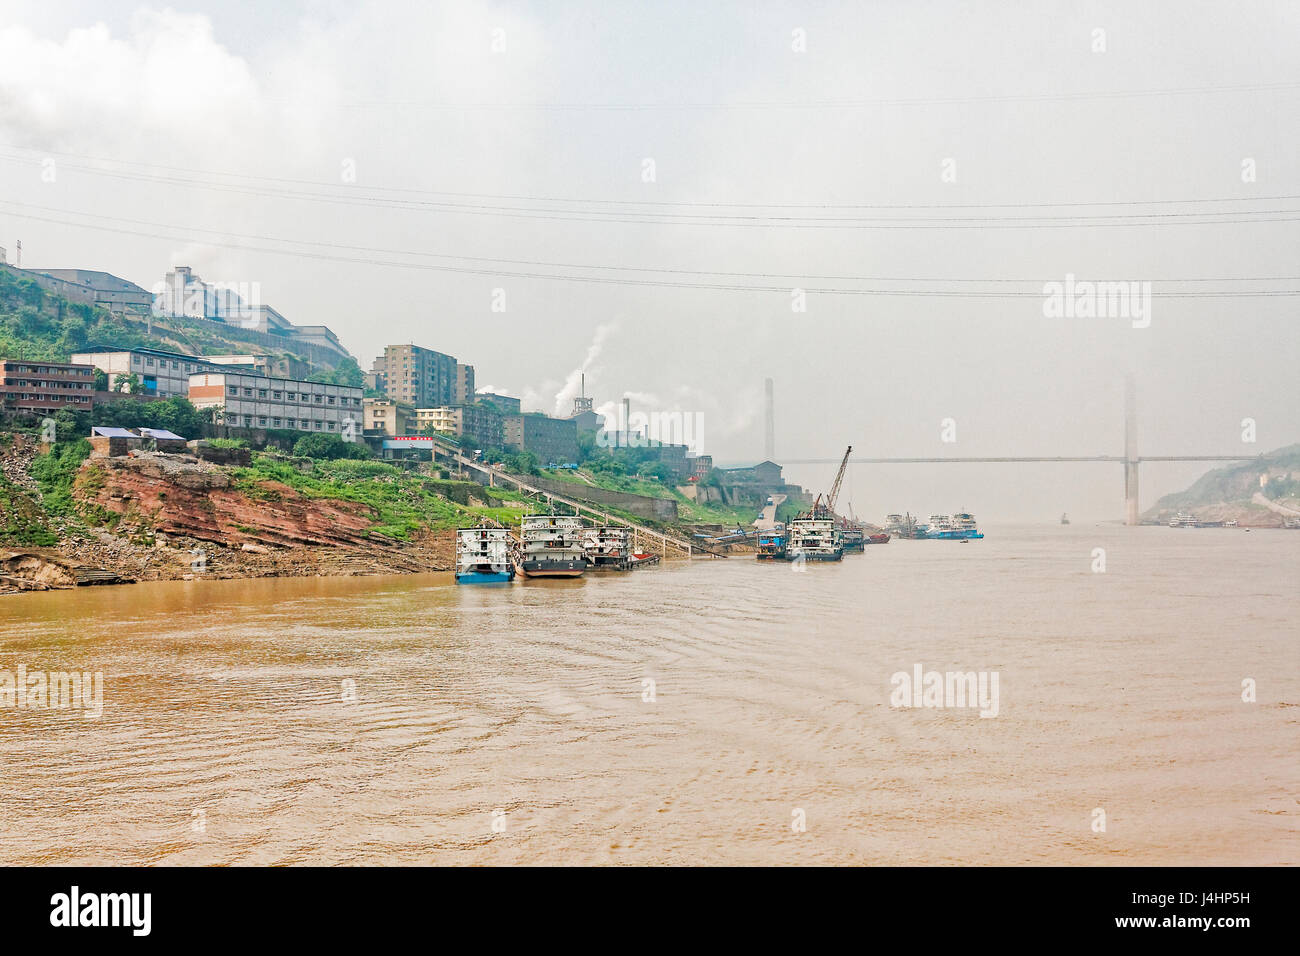 Ships moored close to a large manufacturing facility on the banks of the Yangtze River, near the town of Fuling, - Stock Image